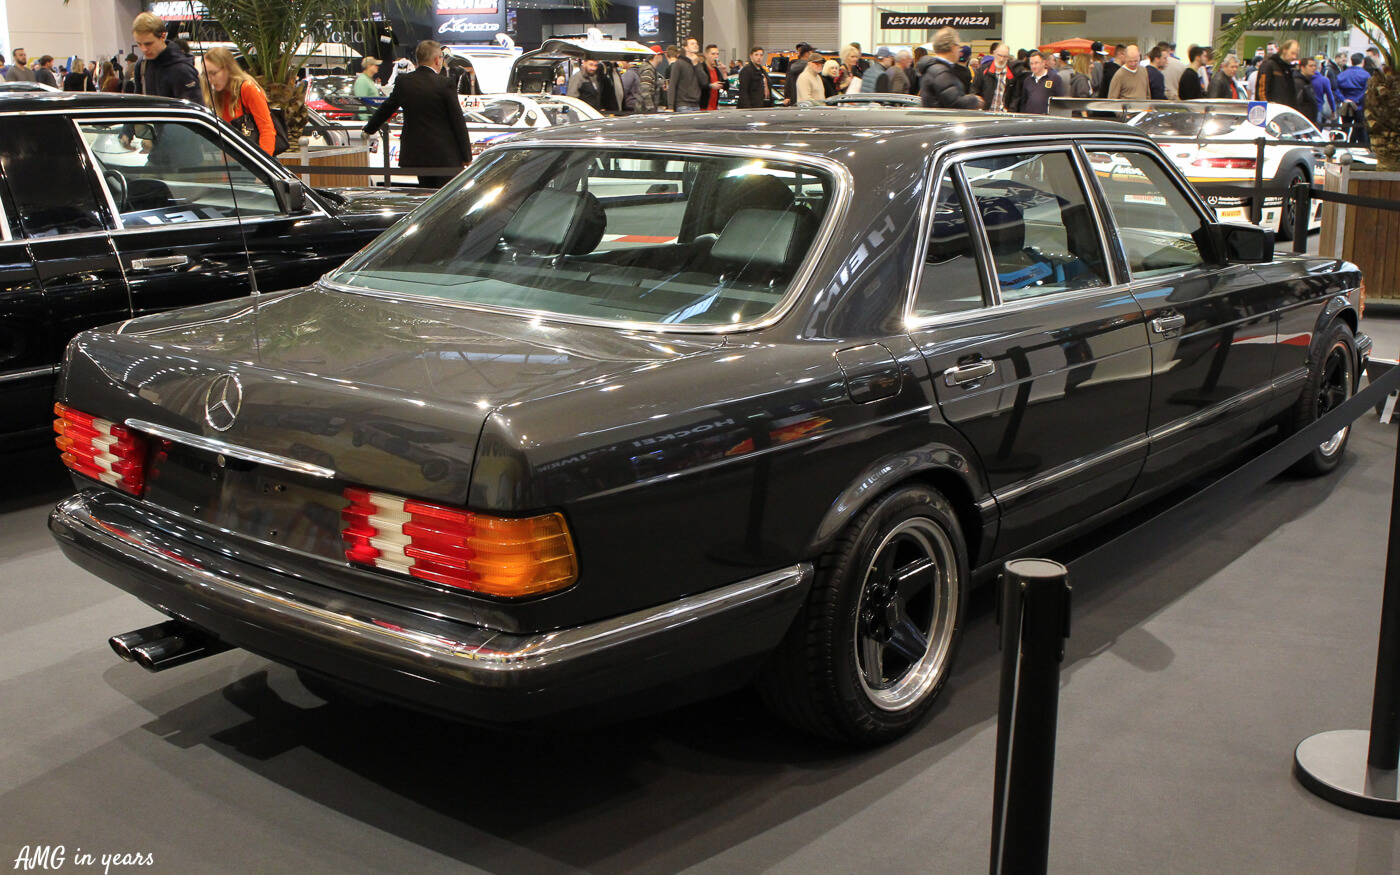 Mercedes Amg At Essen Motor Show Amg In Years